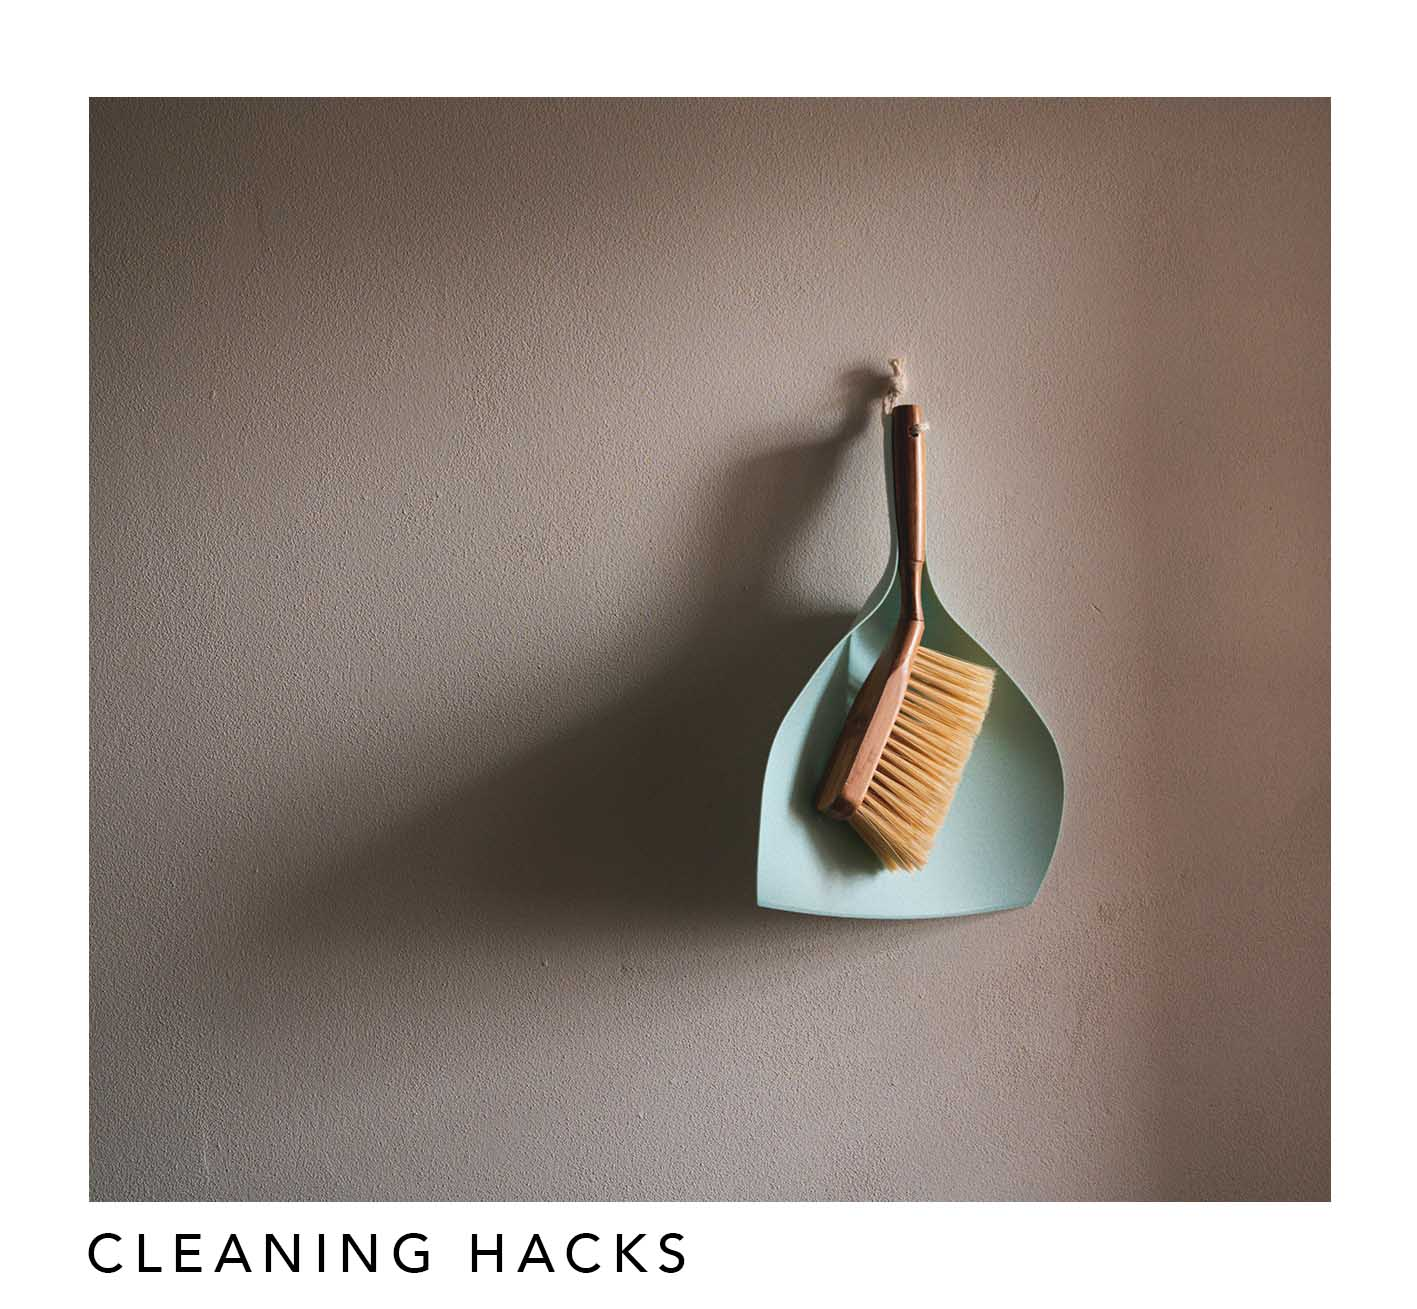 LIFE-HACKS - CLEANING-HACKS